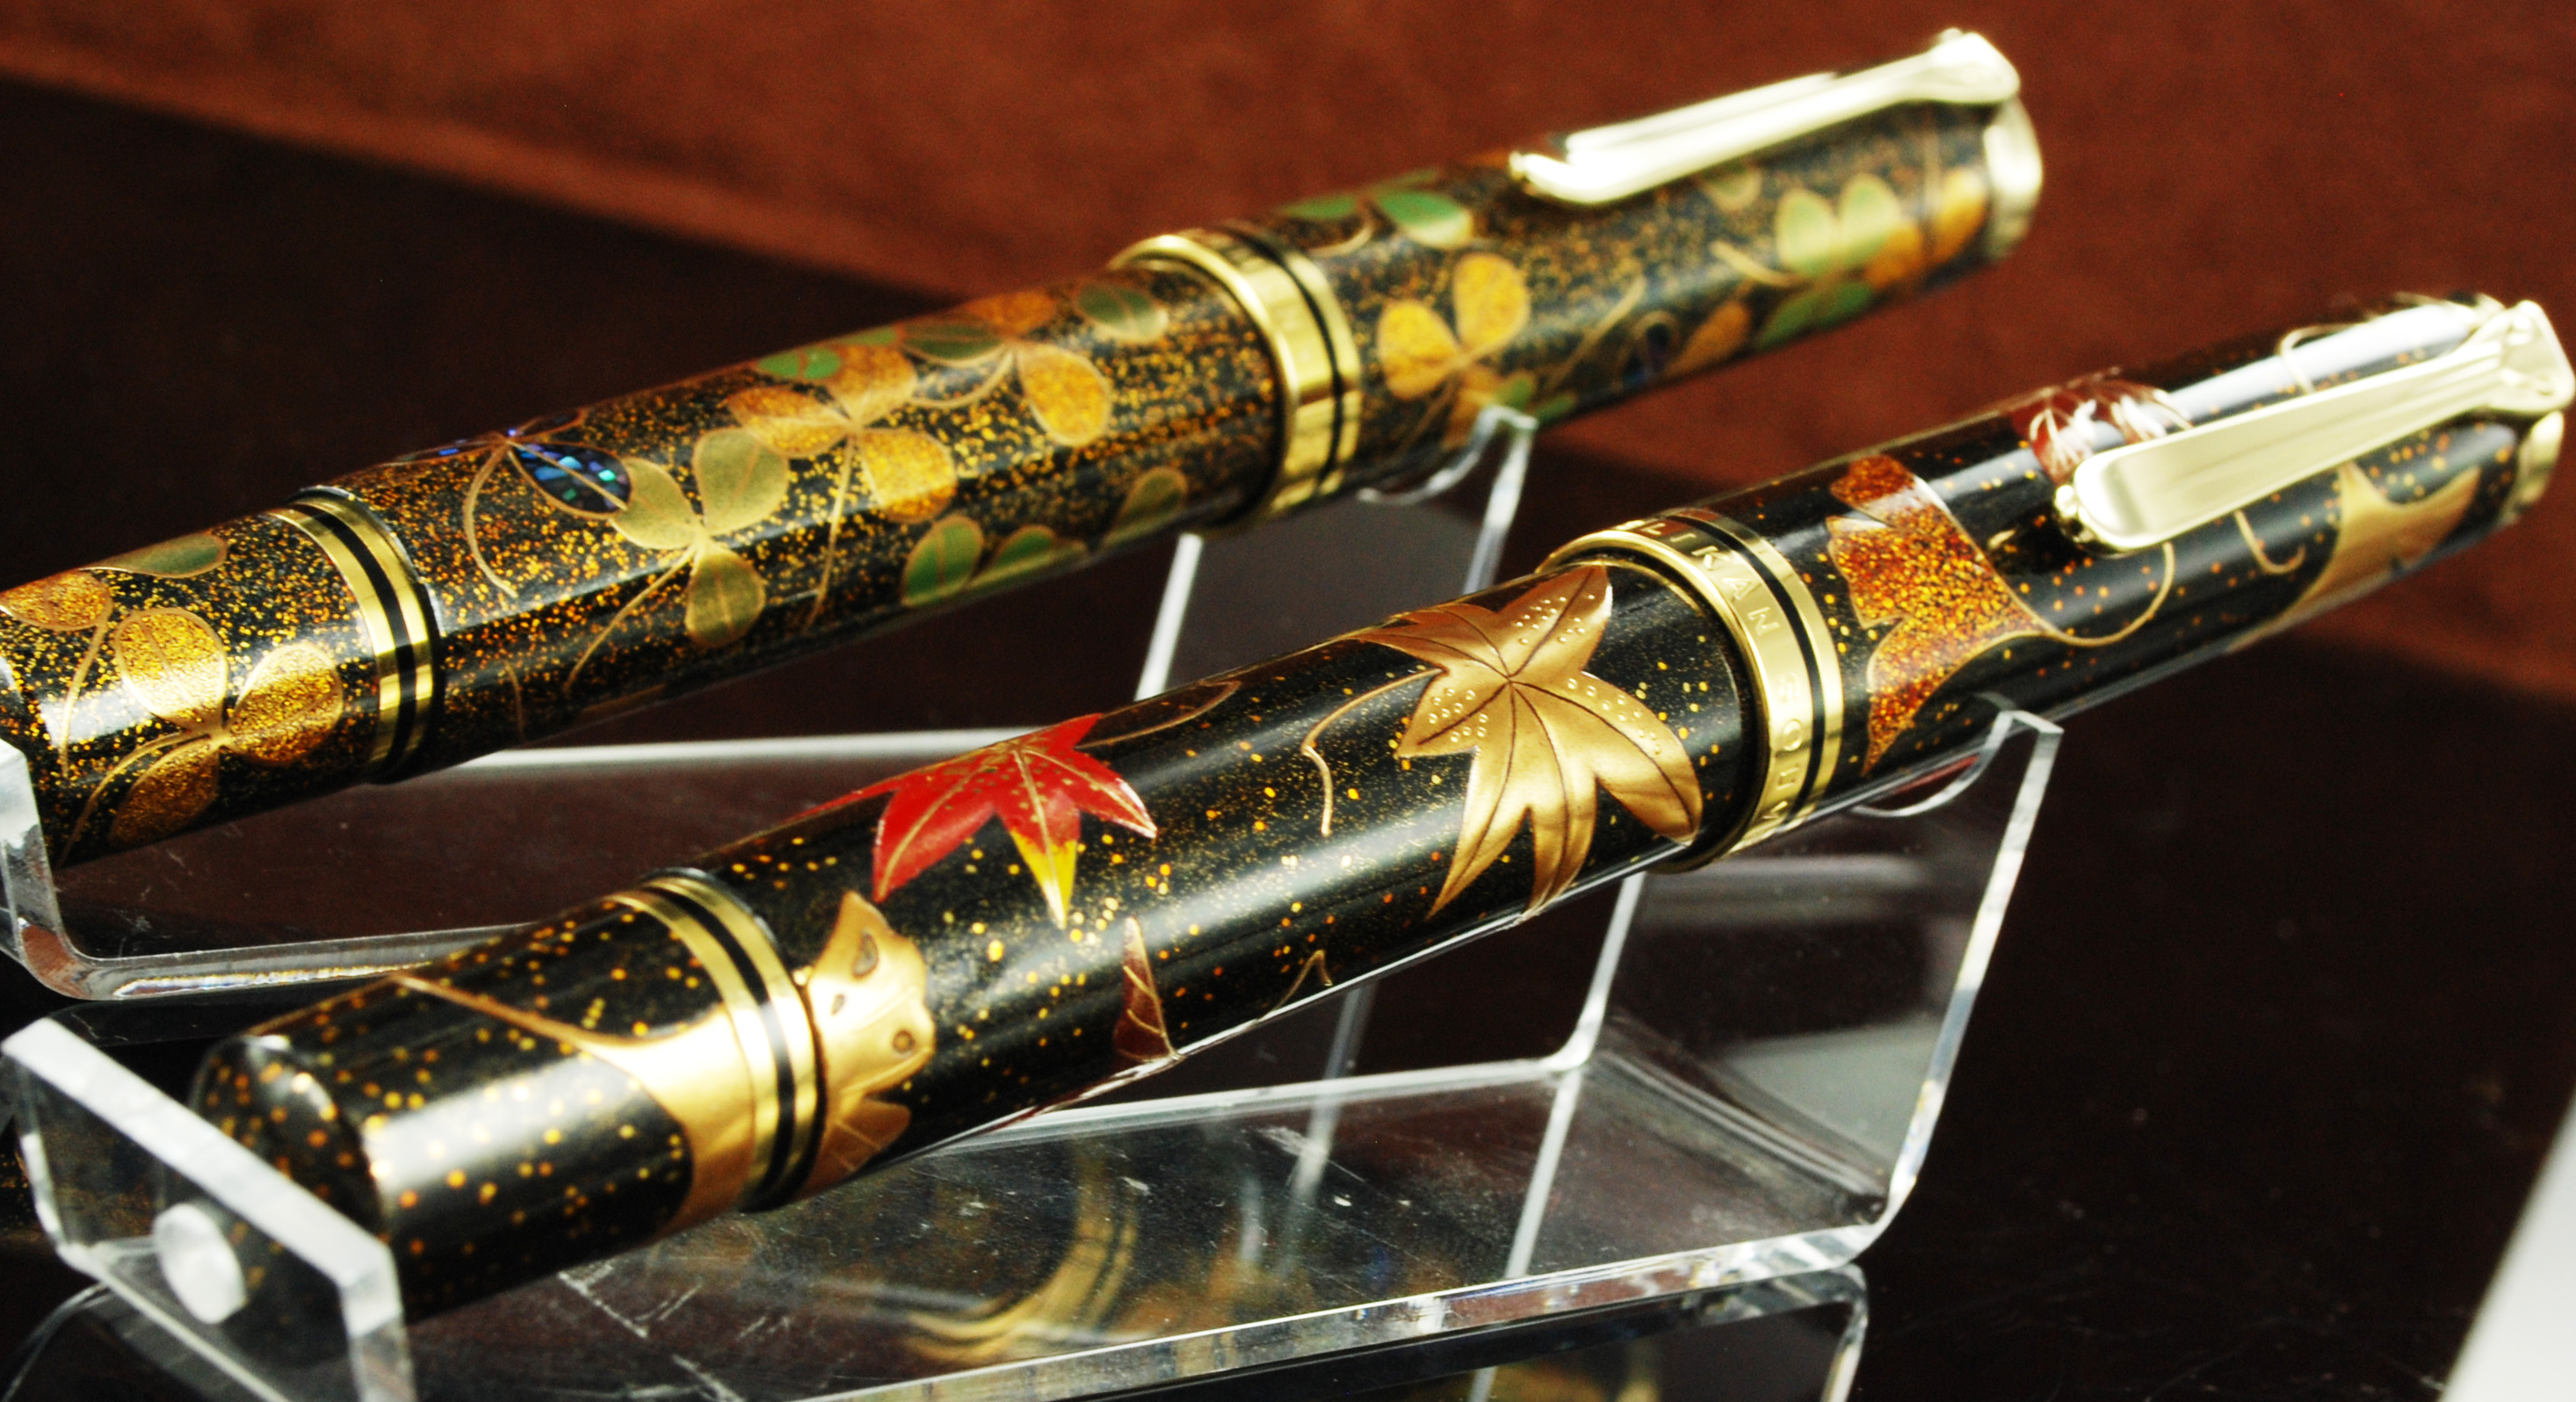 Pelikan Maki-e Four-Leaf Clover(at the back)